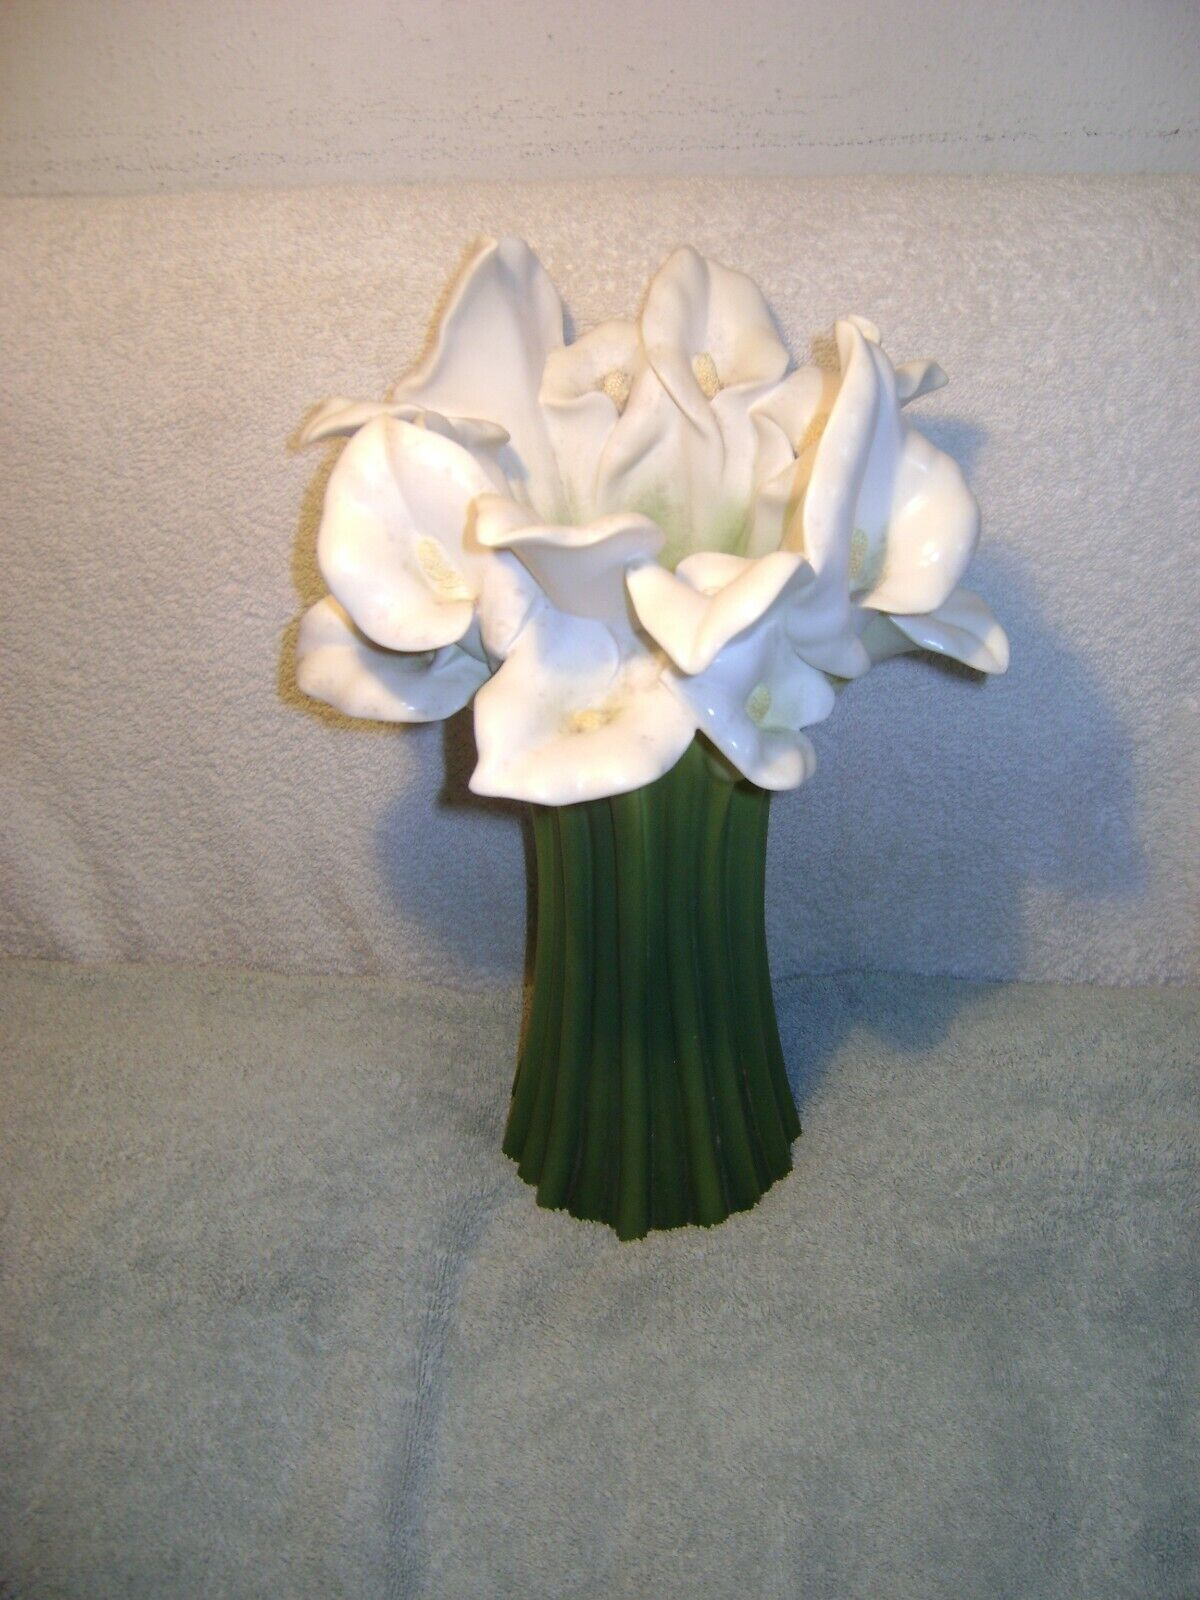 IBIS ORCHID DESIGN 301 CALLA LILY BONDED MARBLE 13 VASE - $22.00